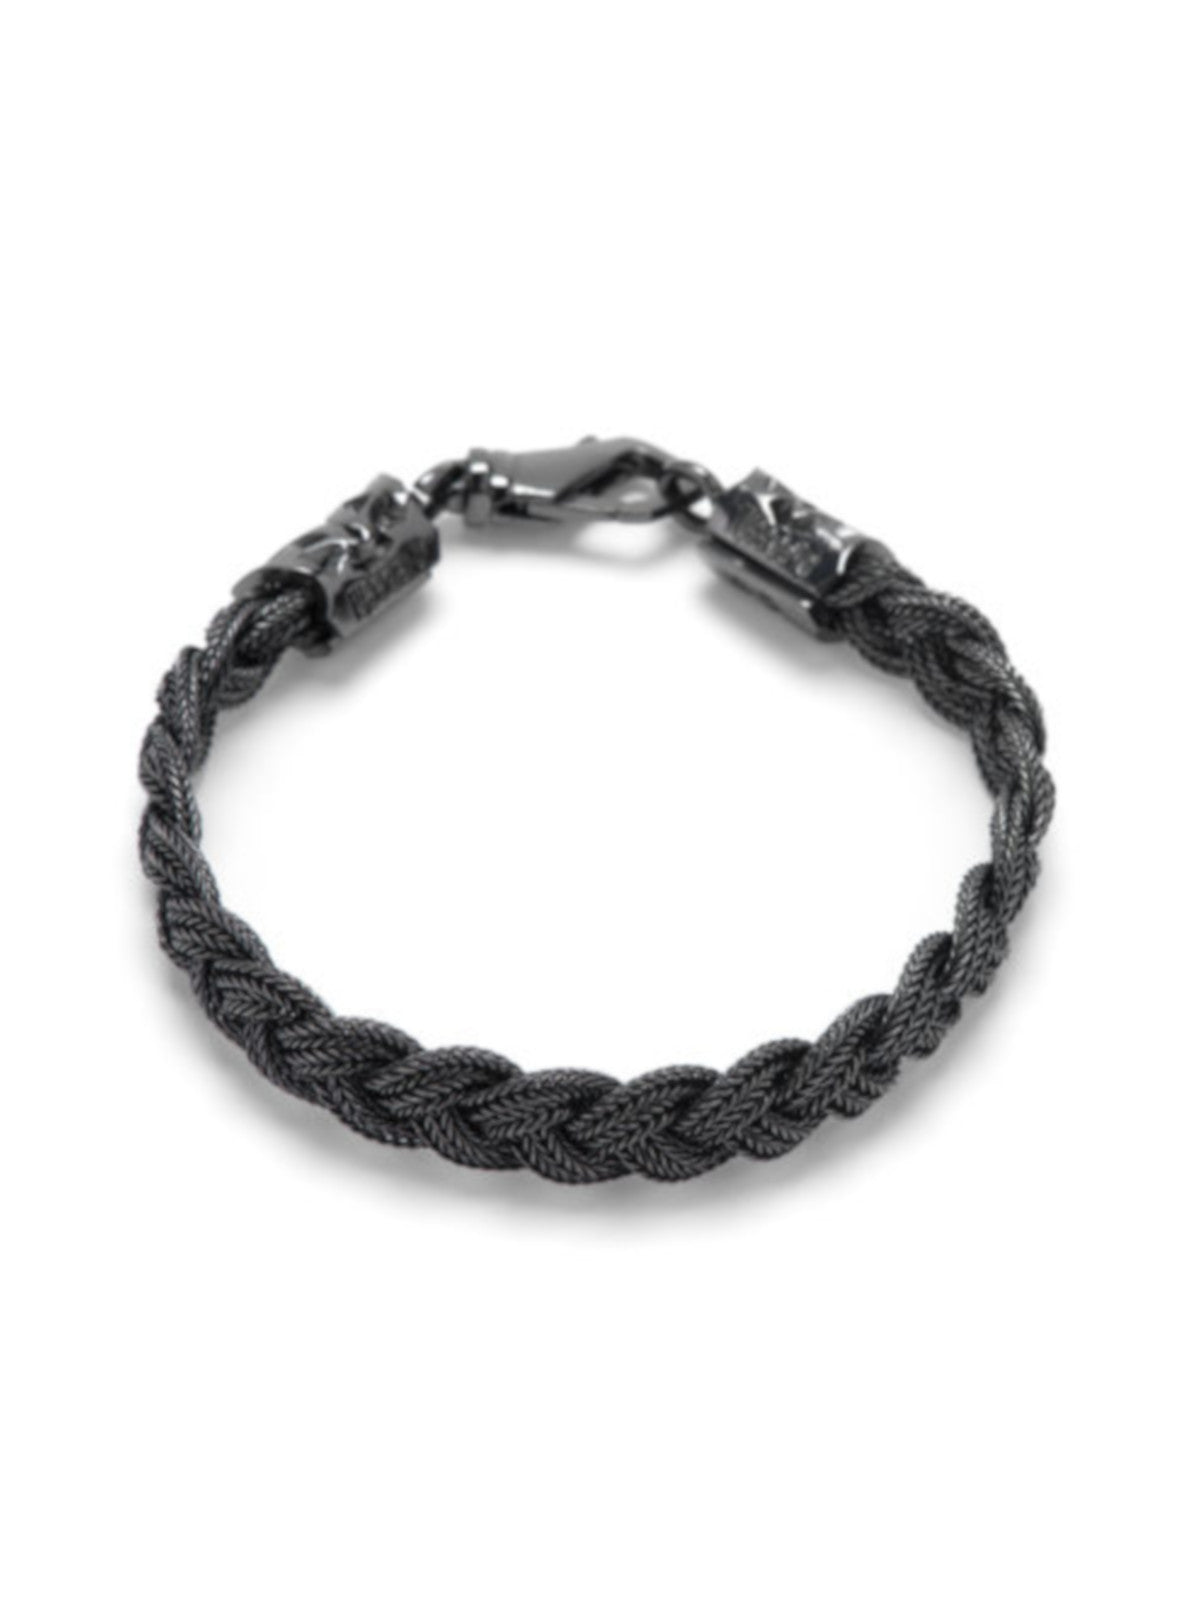 BLACK FLAT BRAIDED BRACELET